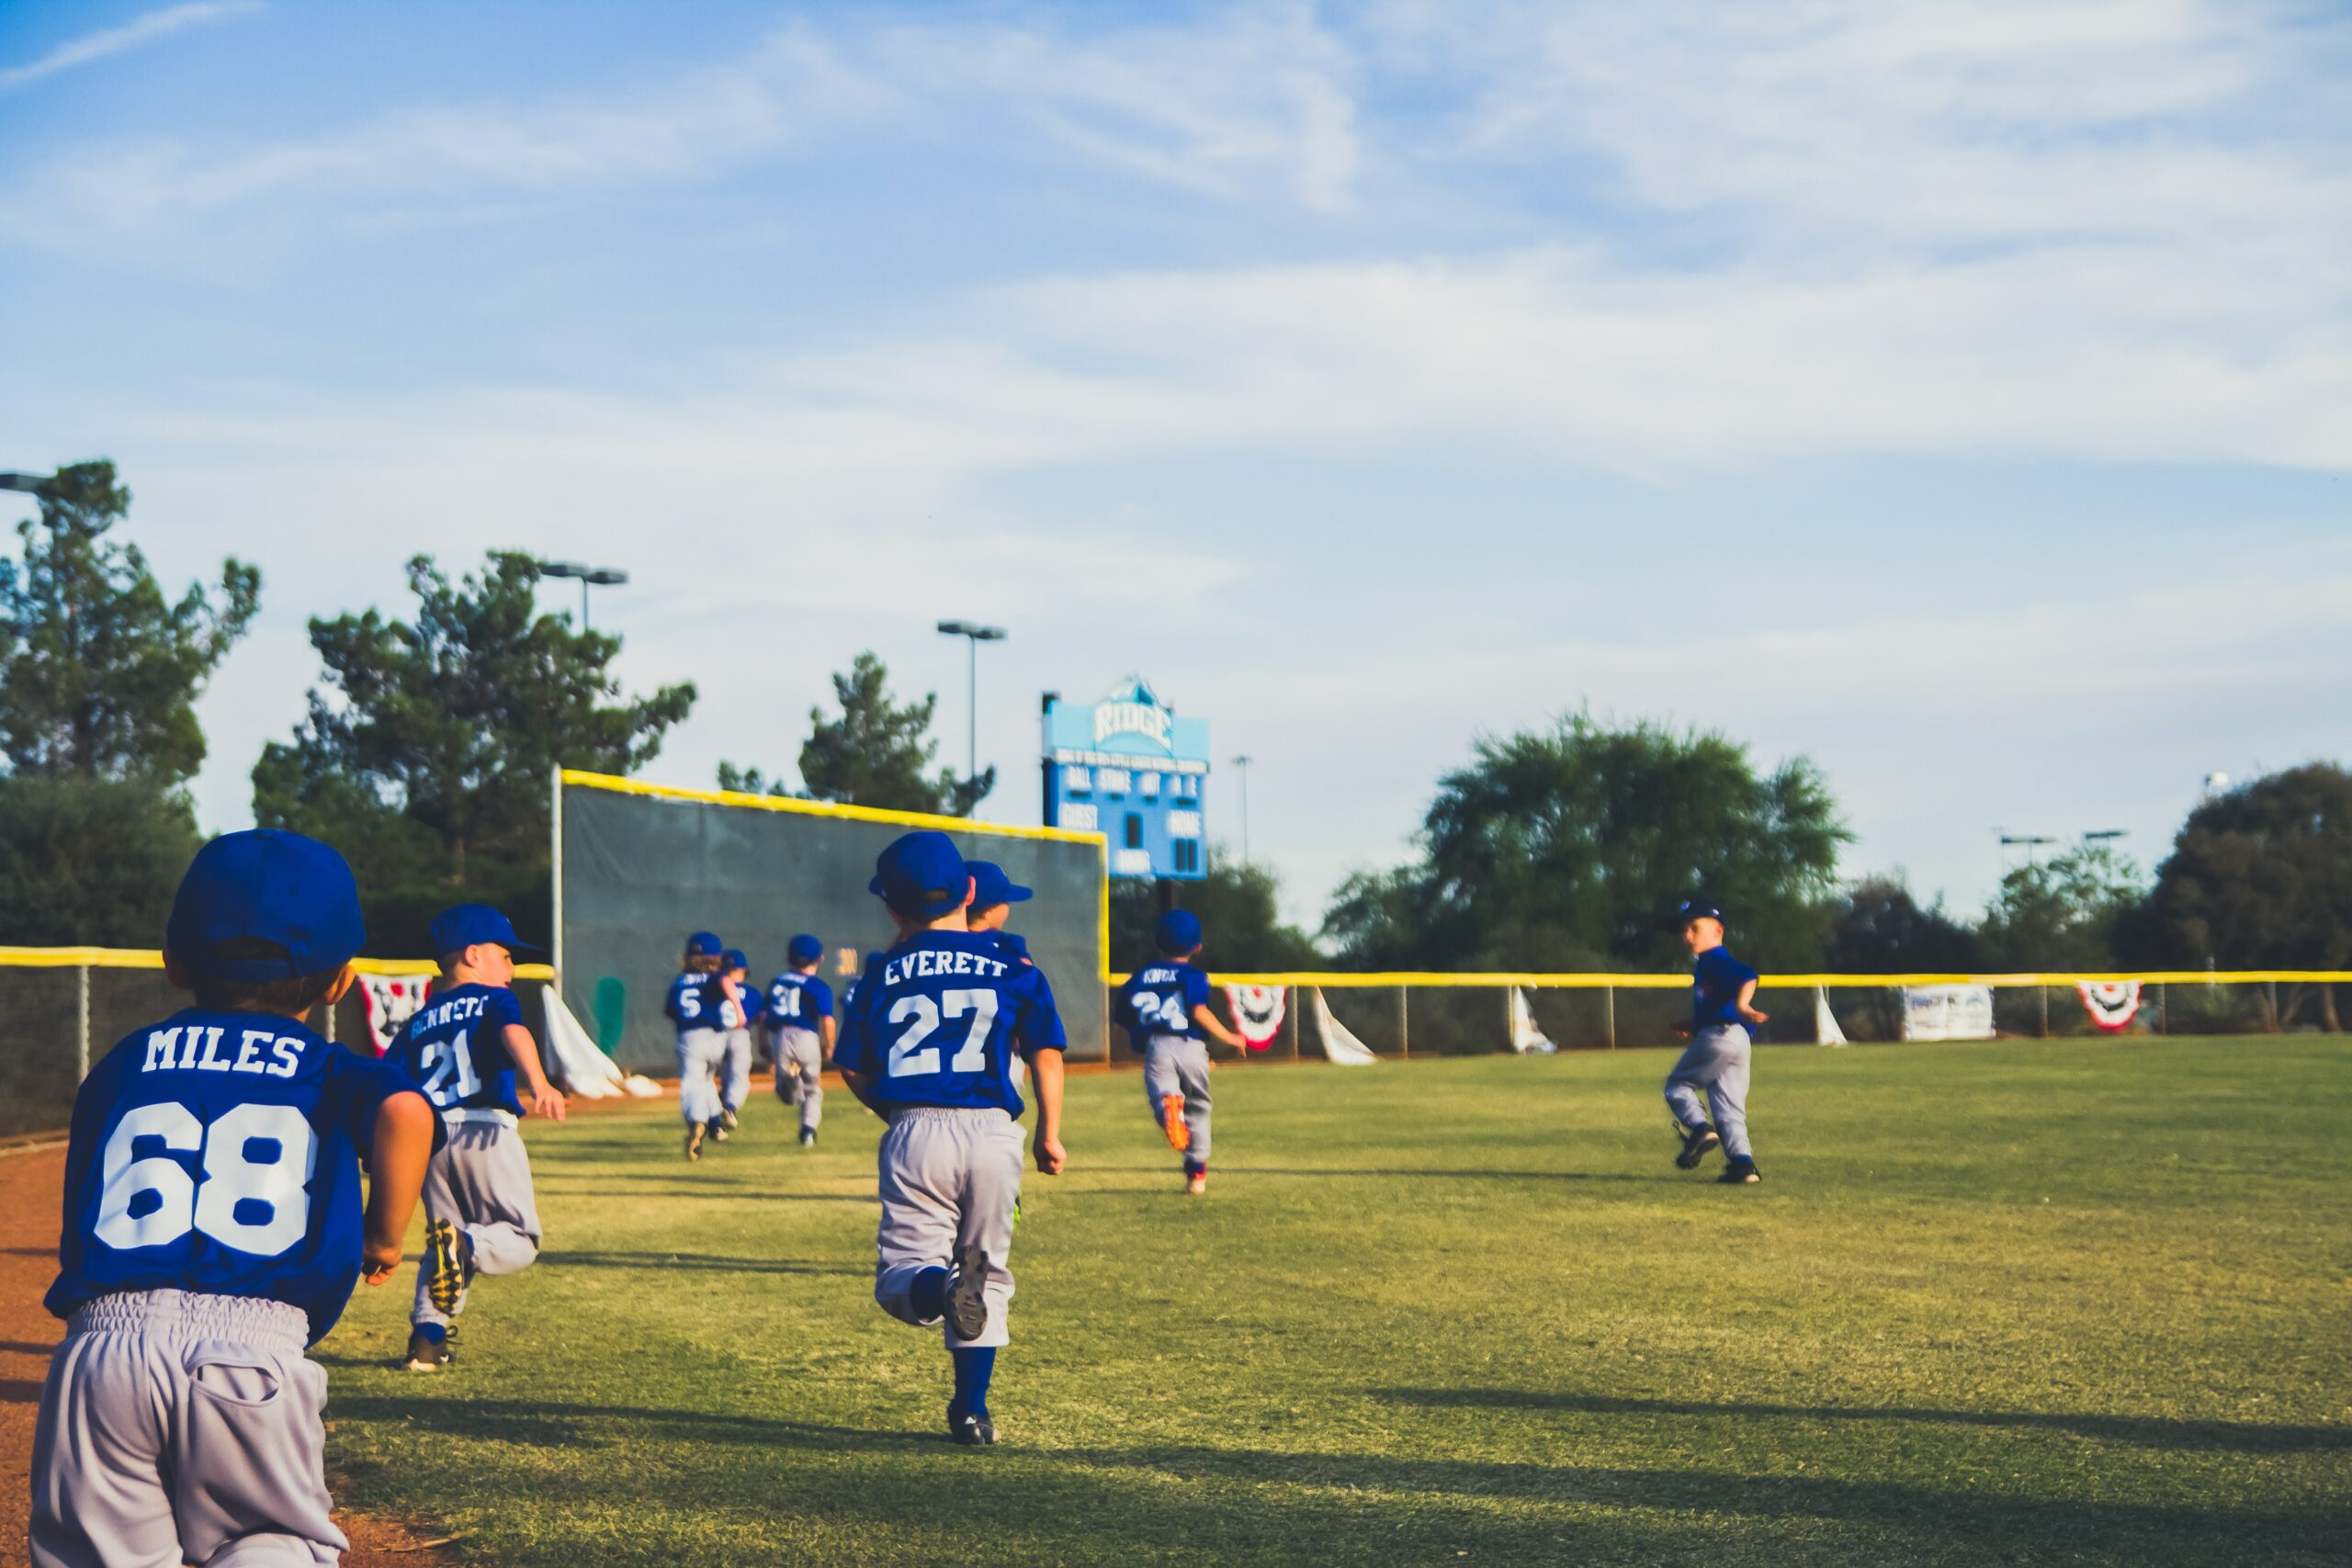 Baseball Tryout Tips for Players